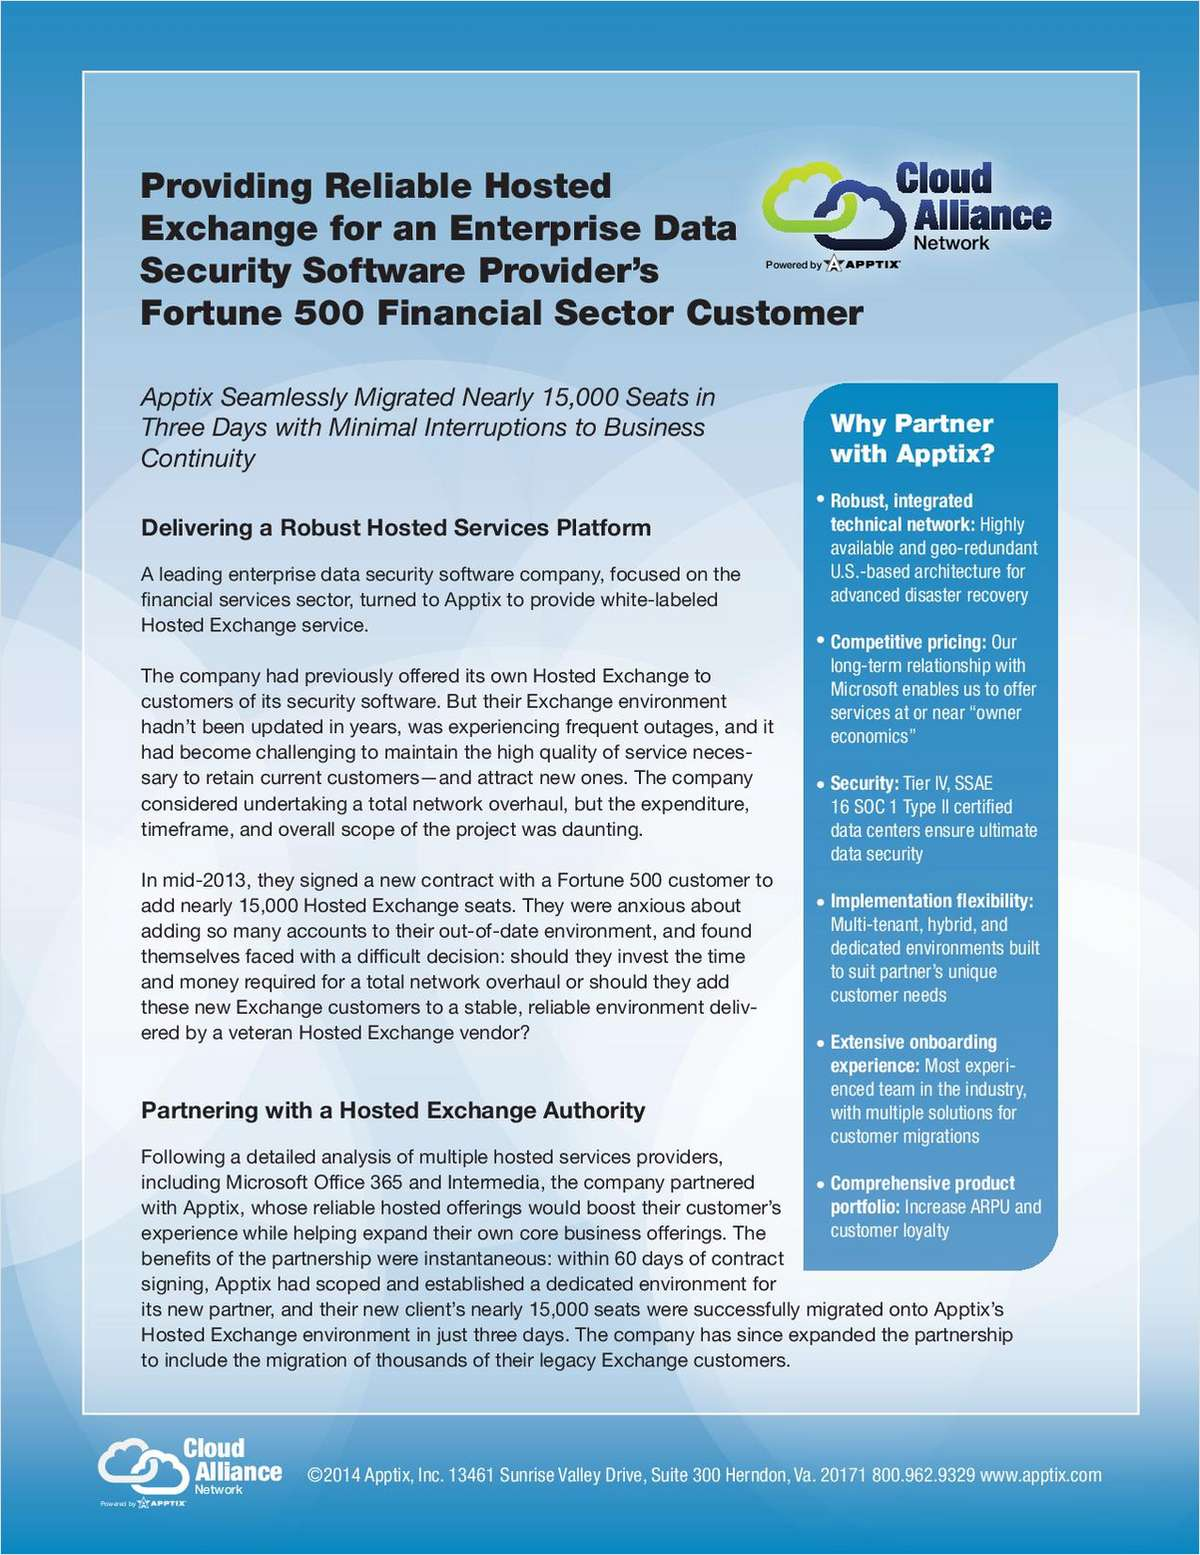 Providing Reliable Hosted Exchange for a Fortune 500 Financial Sector Customer